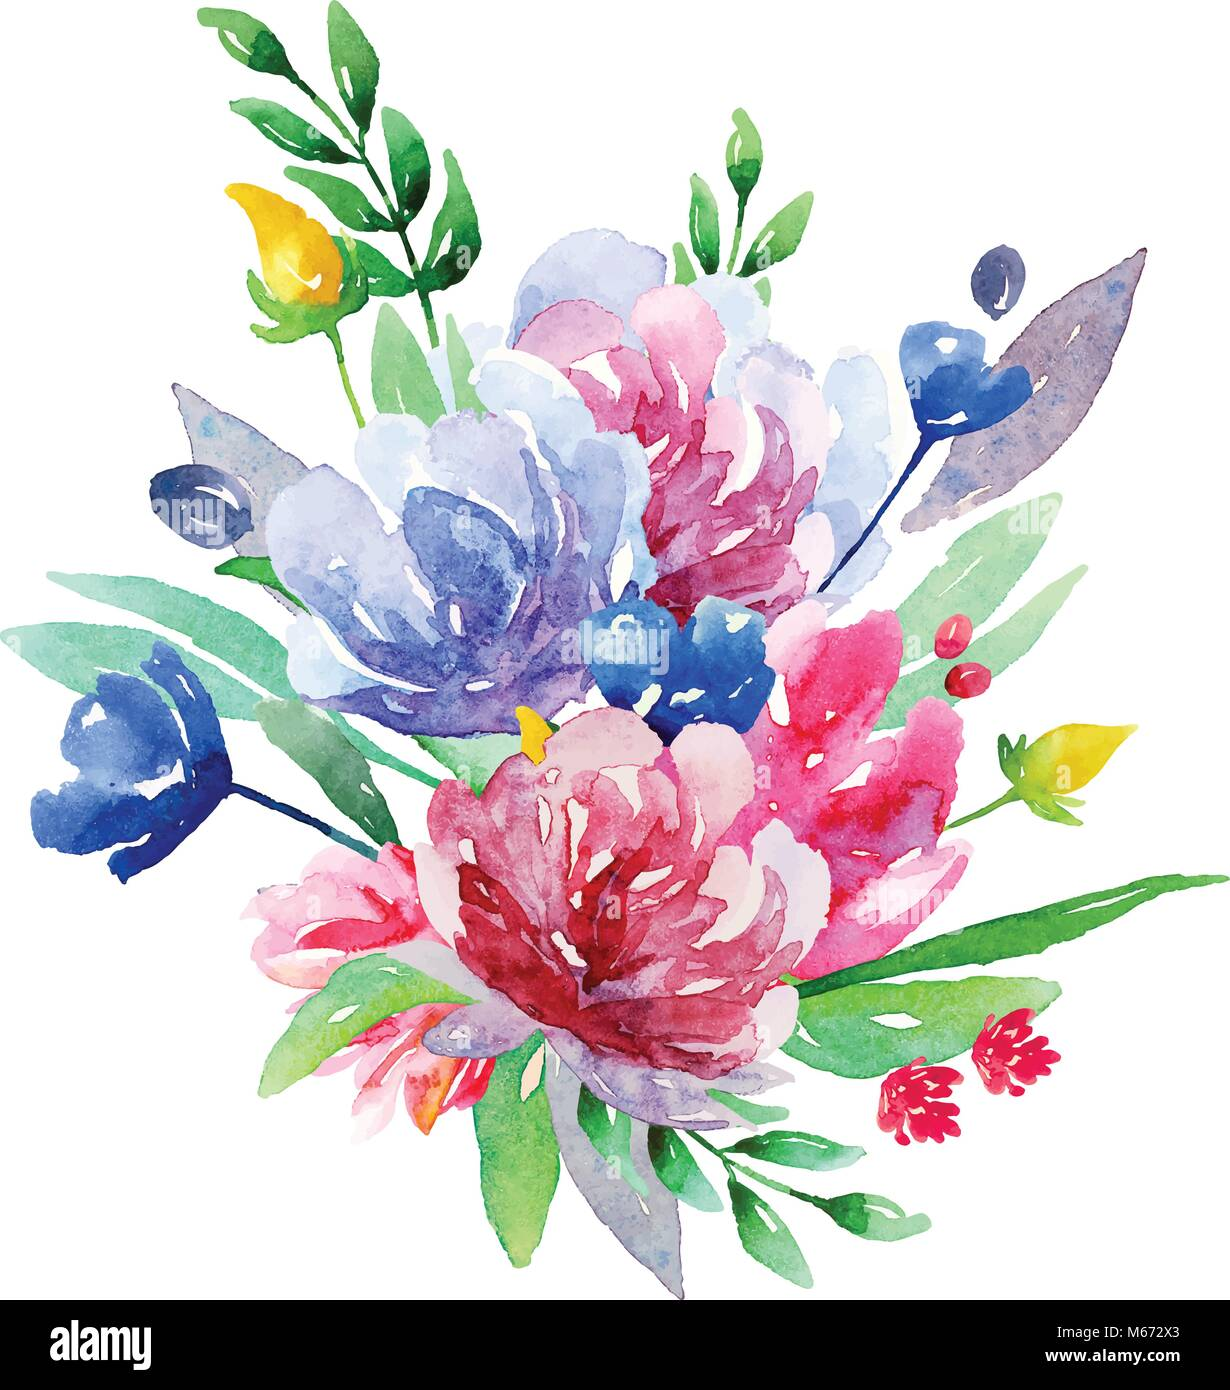 Watercolor Floral Bouquet Vector Clip Art Flowers Illustration